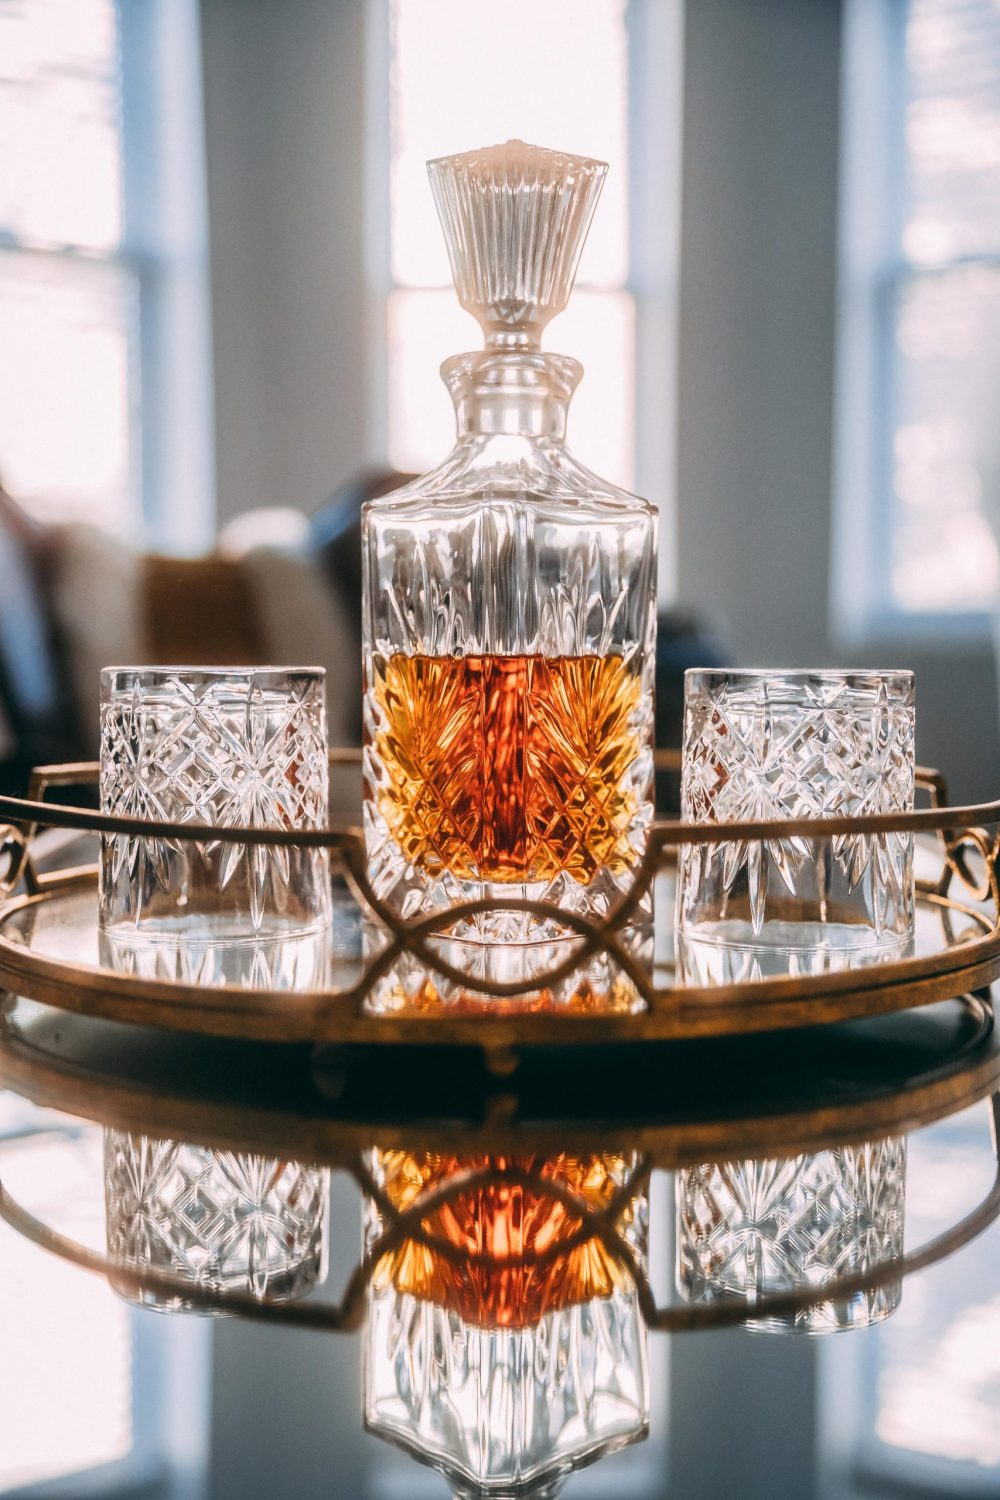 bottle and glasses of whiskey | Business News Scotland